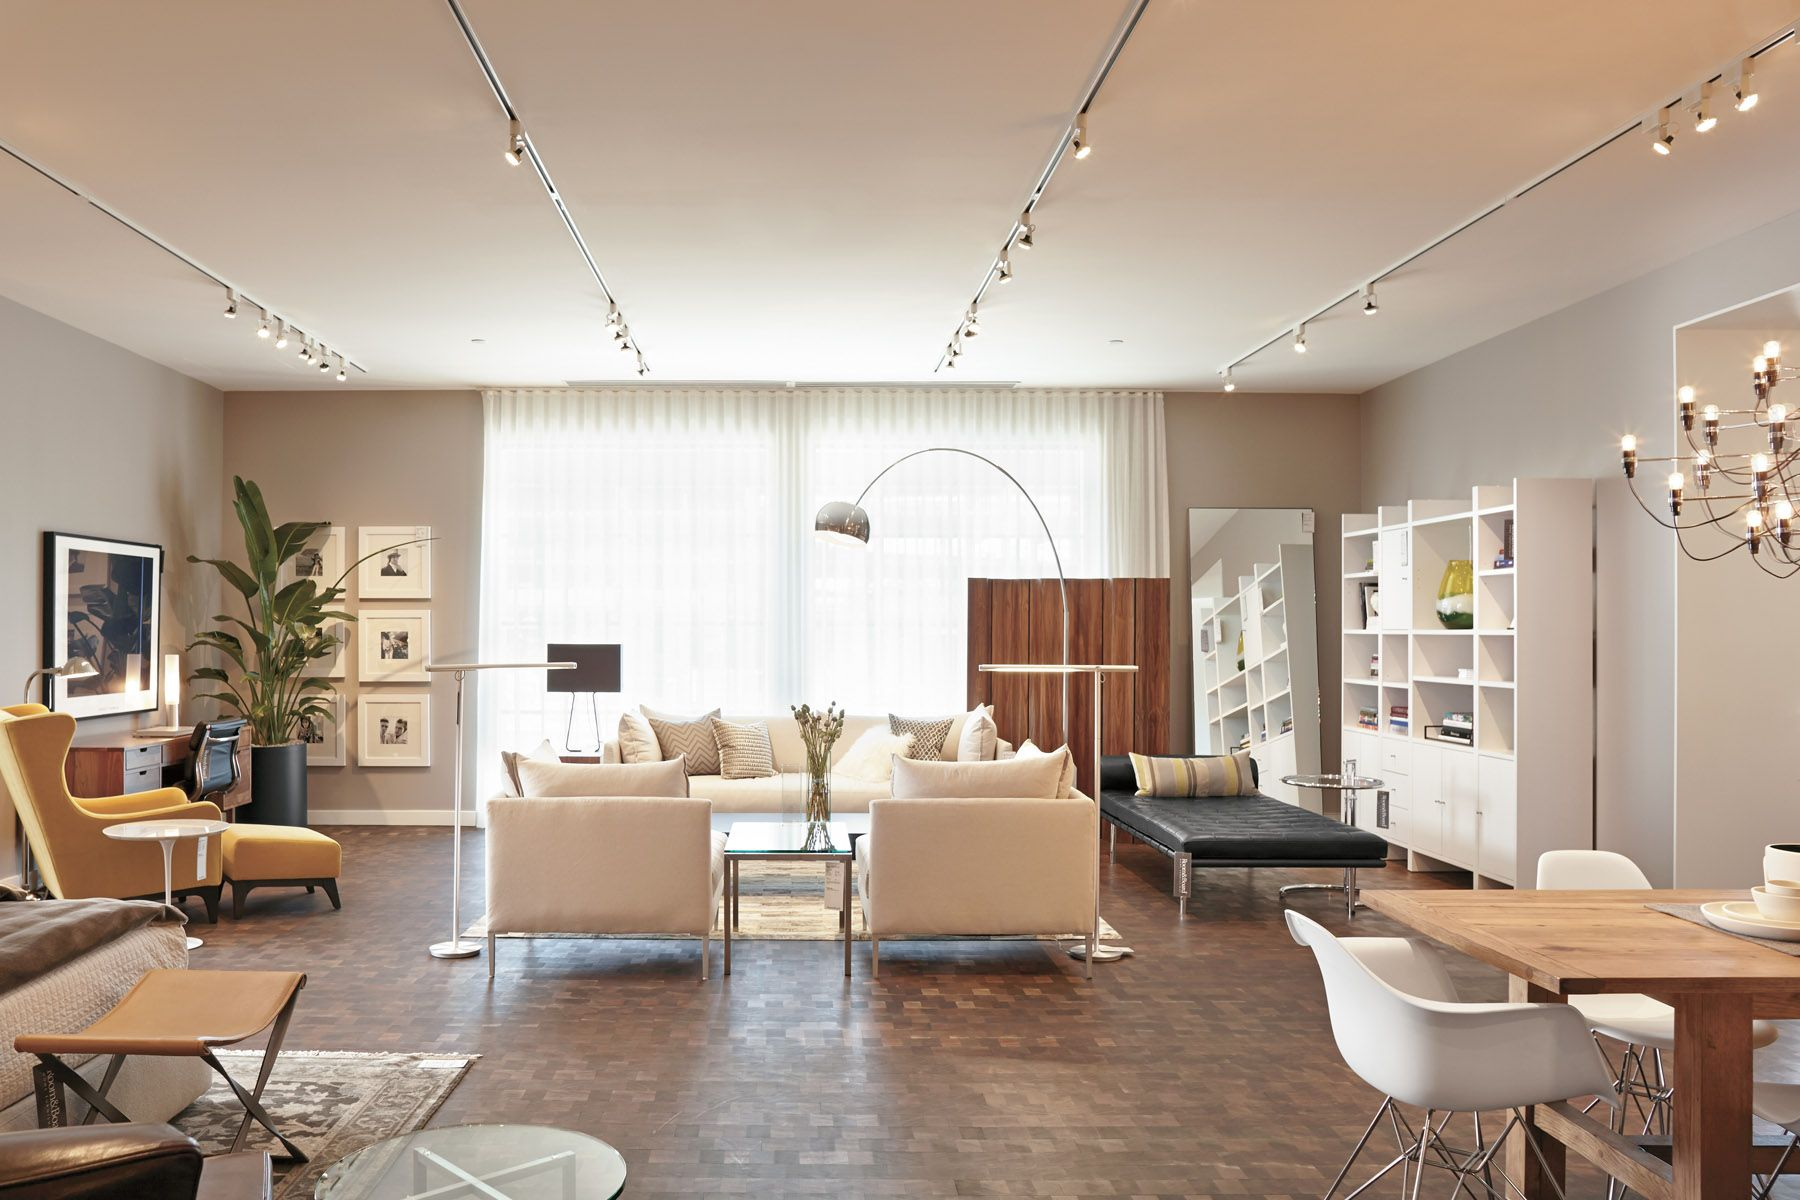 Visit Room U0026 Seattle At University Village, Just North Of Downtown Seattle.  Find Modern Furniture And Home Decor.